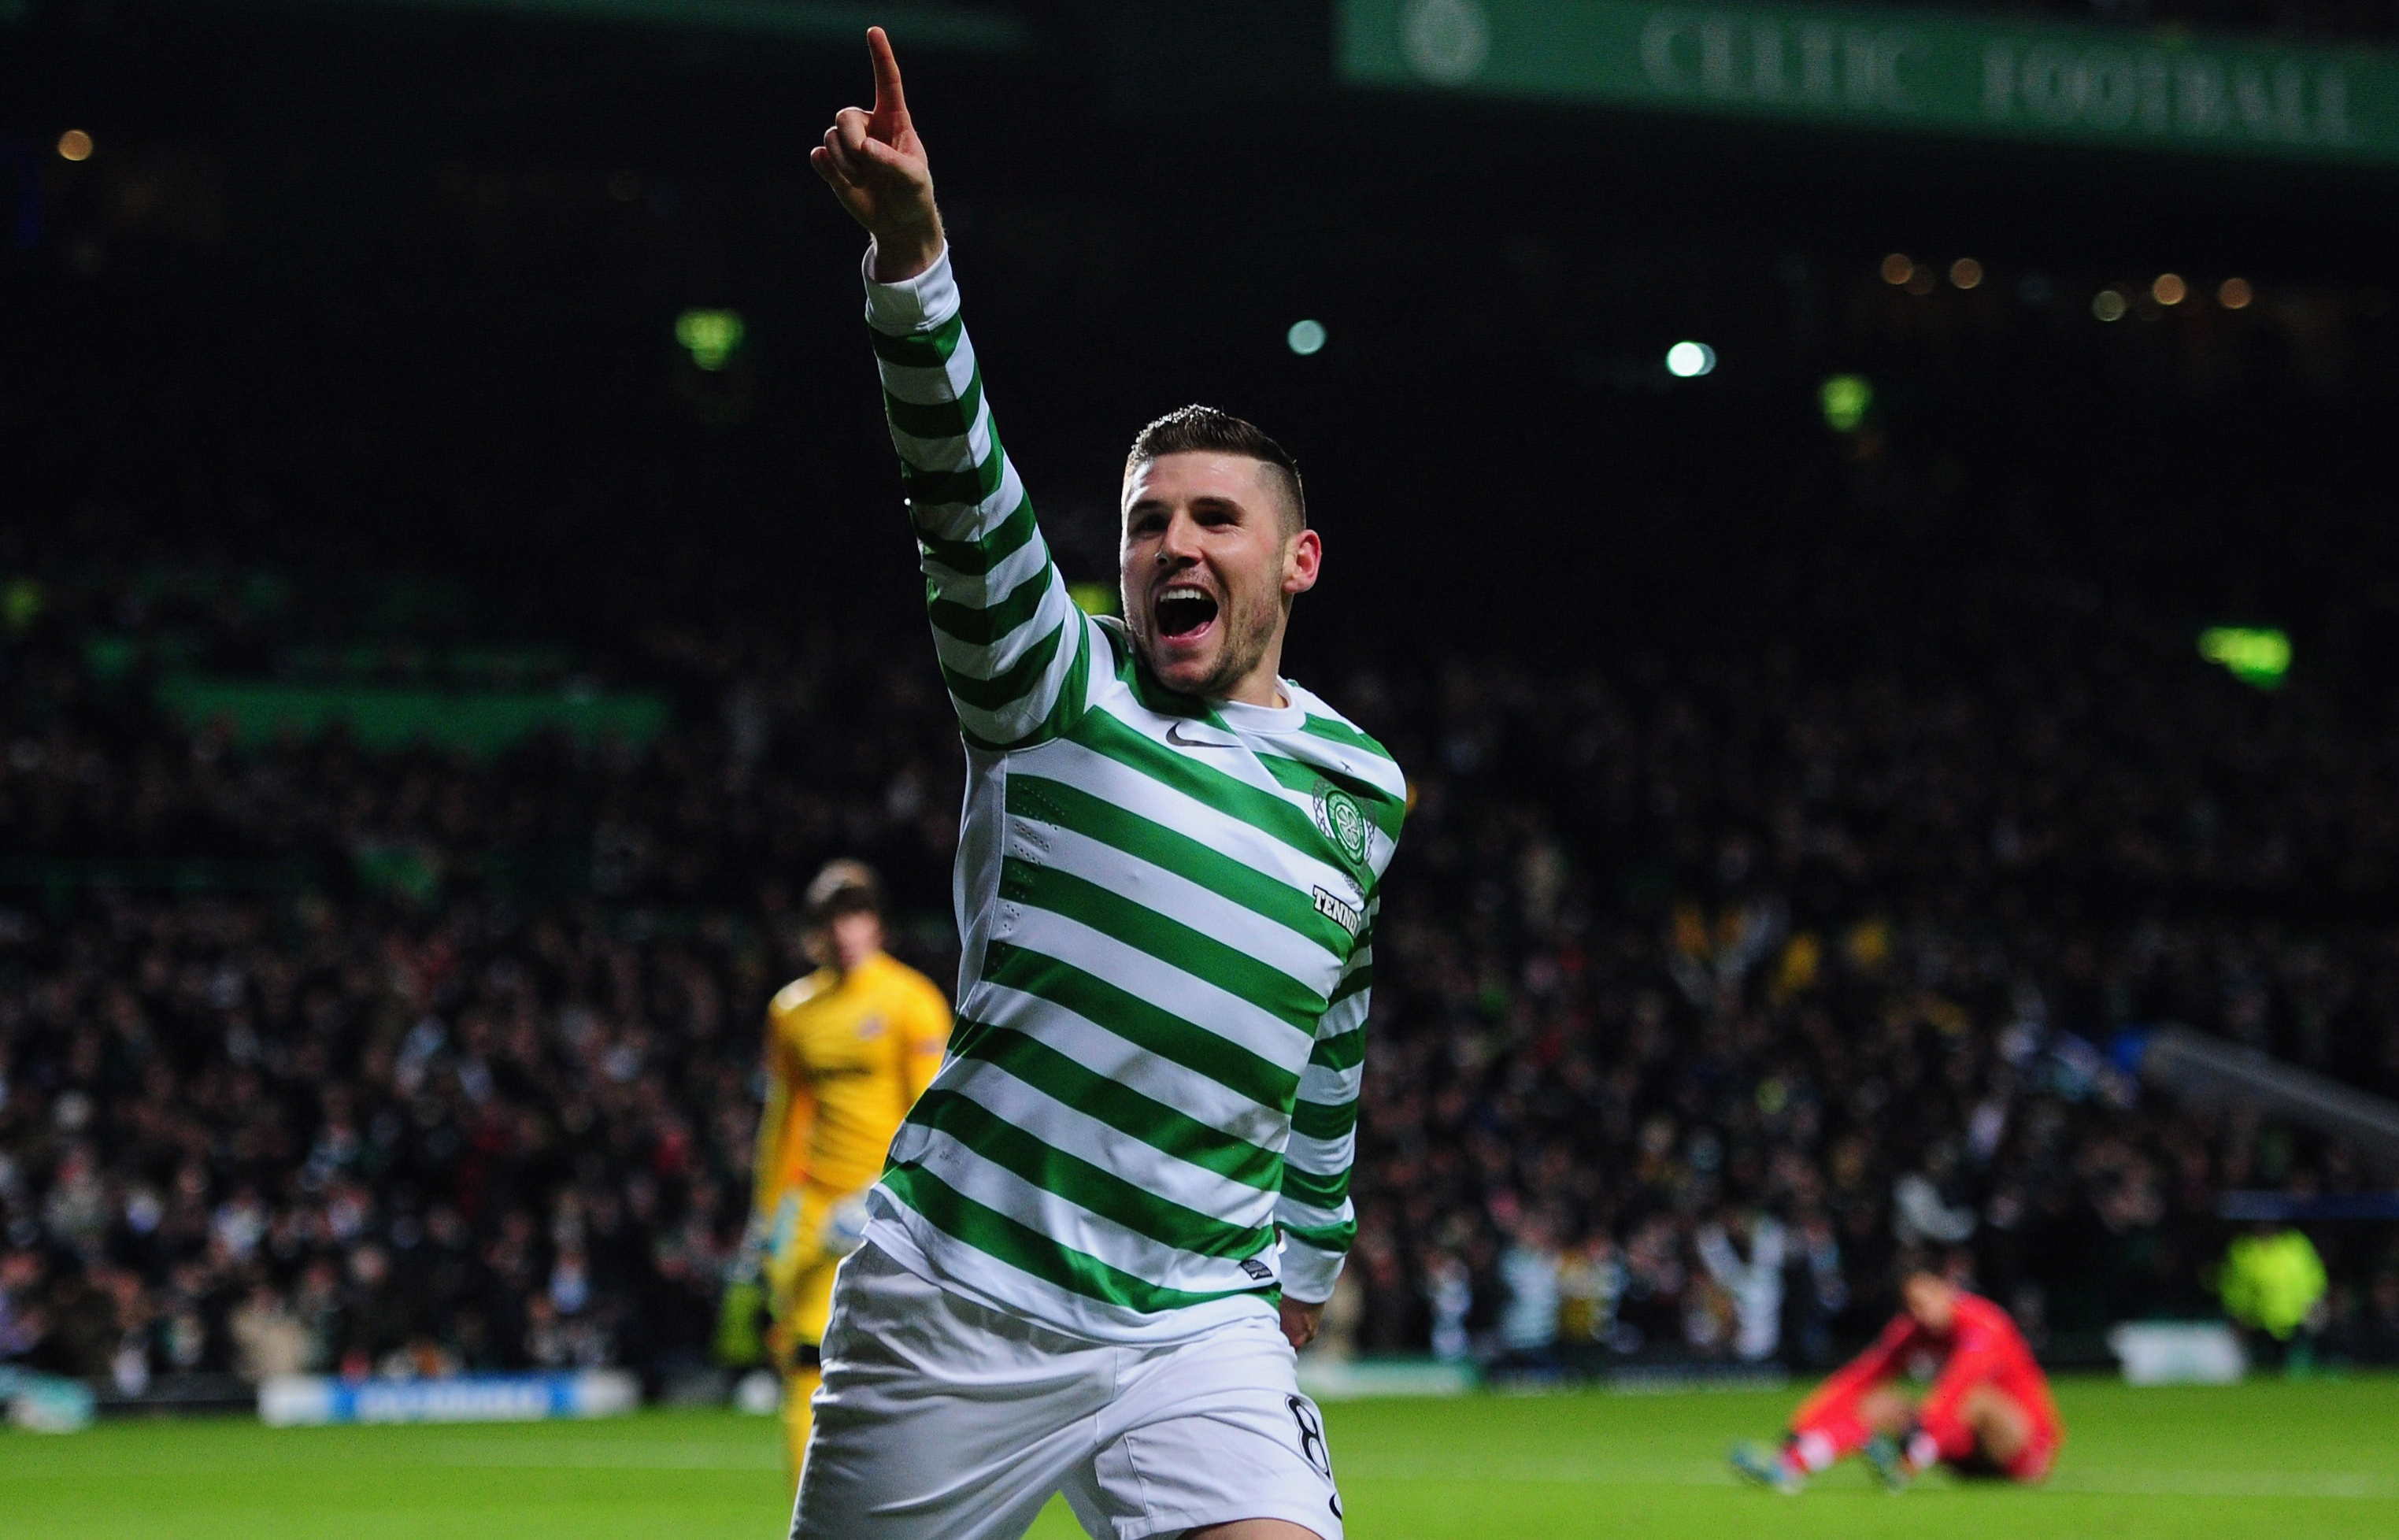 Neil Lennon hails 'monumental achievement' as Celtic make Champions League last 16